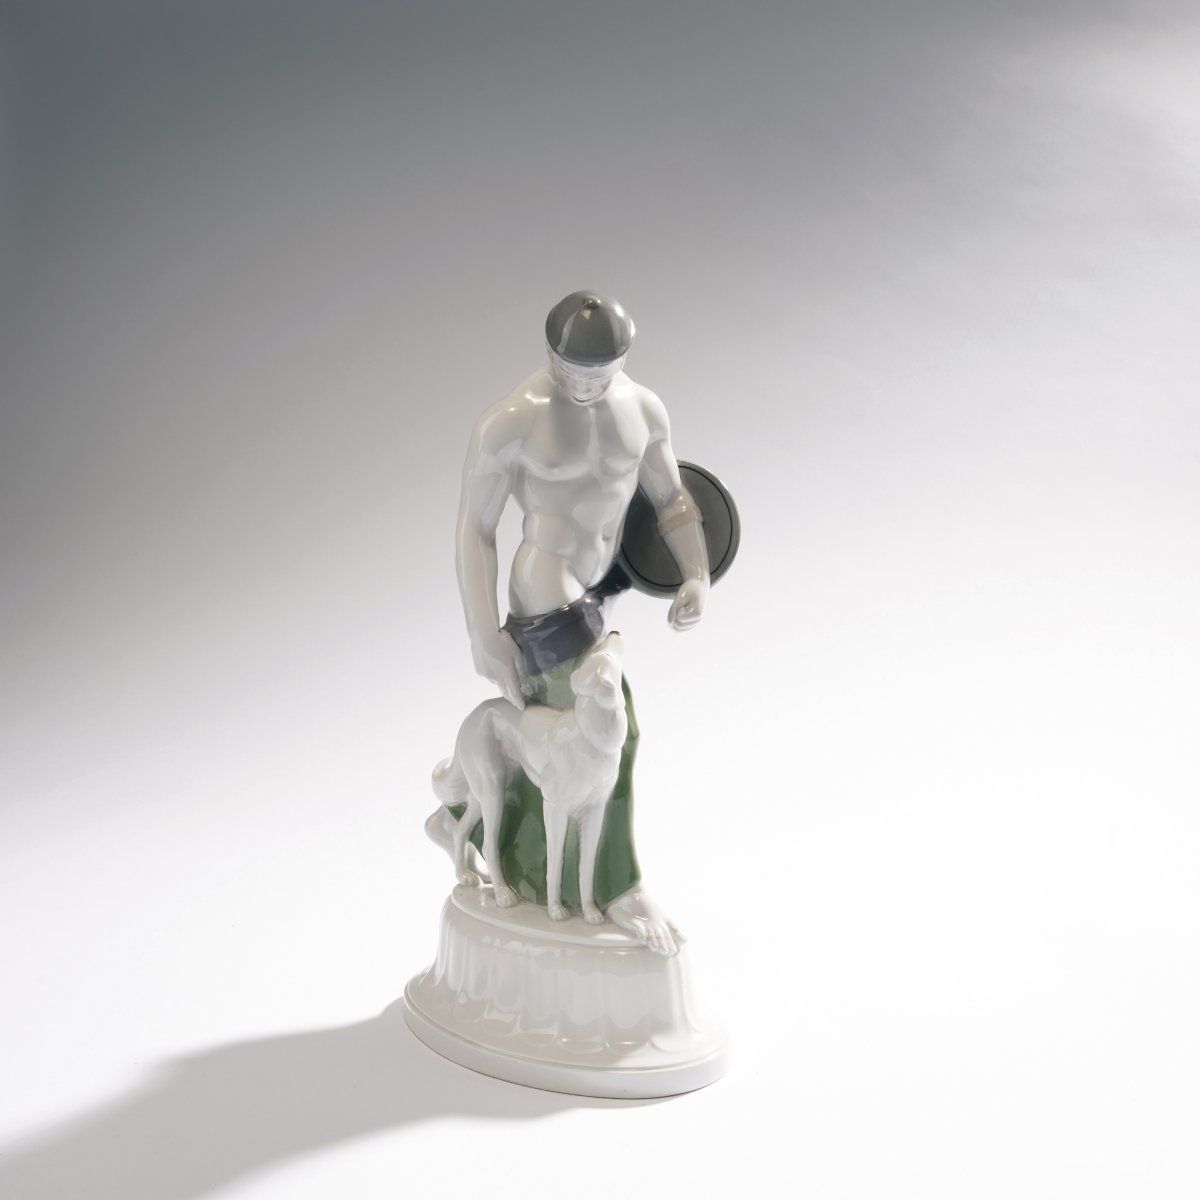 Lot 45 - Adolph Amberg, 'Goth', 1910'Goth', 1910H. 31.2 cm. Made by KPM Berlin. Porcelain, white, glazed,